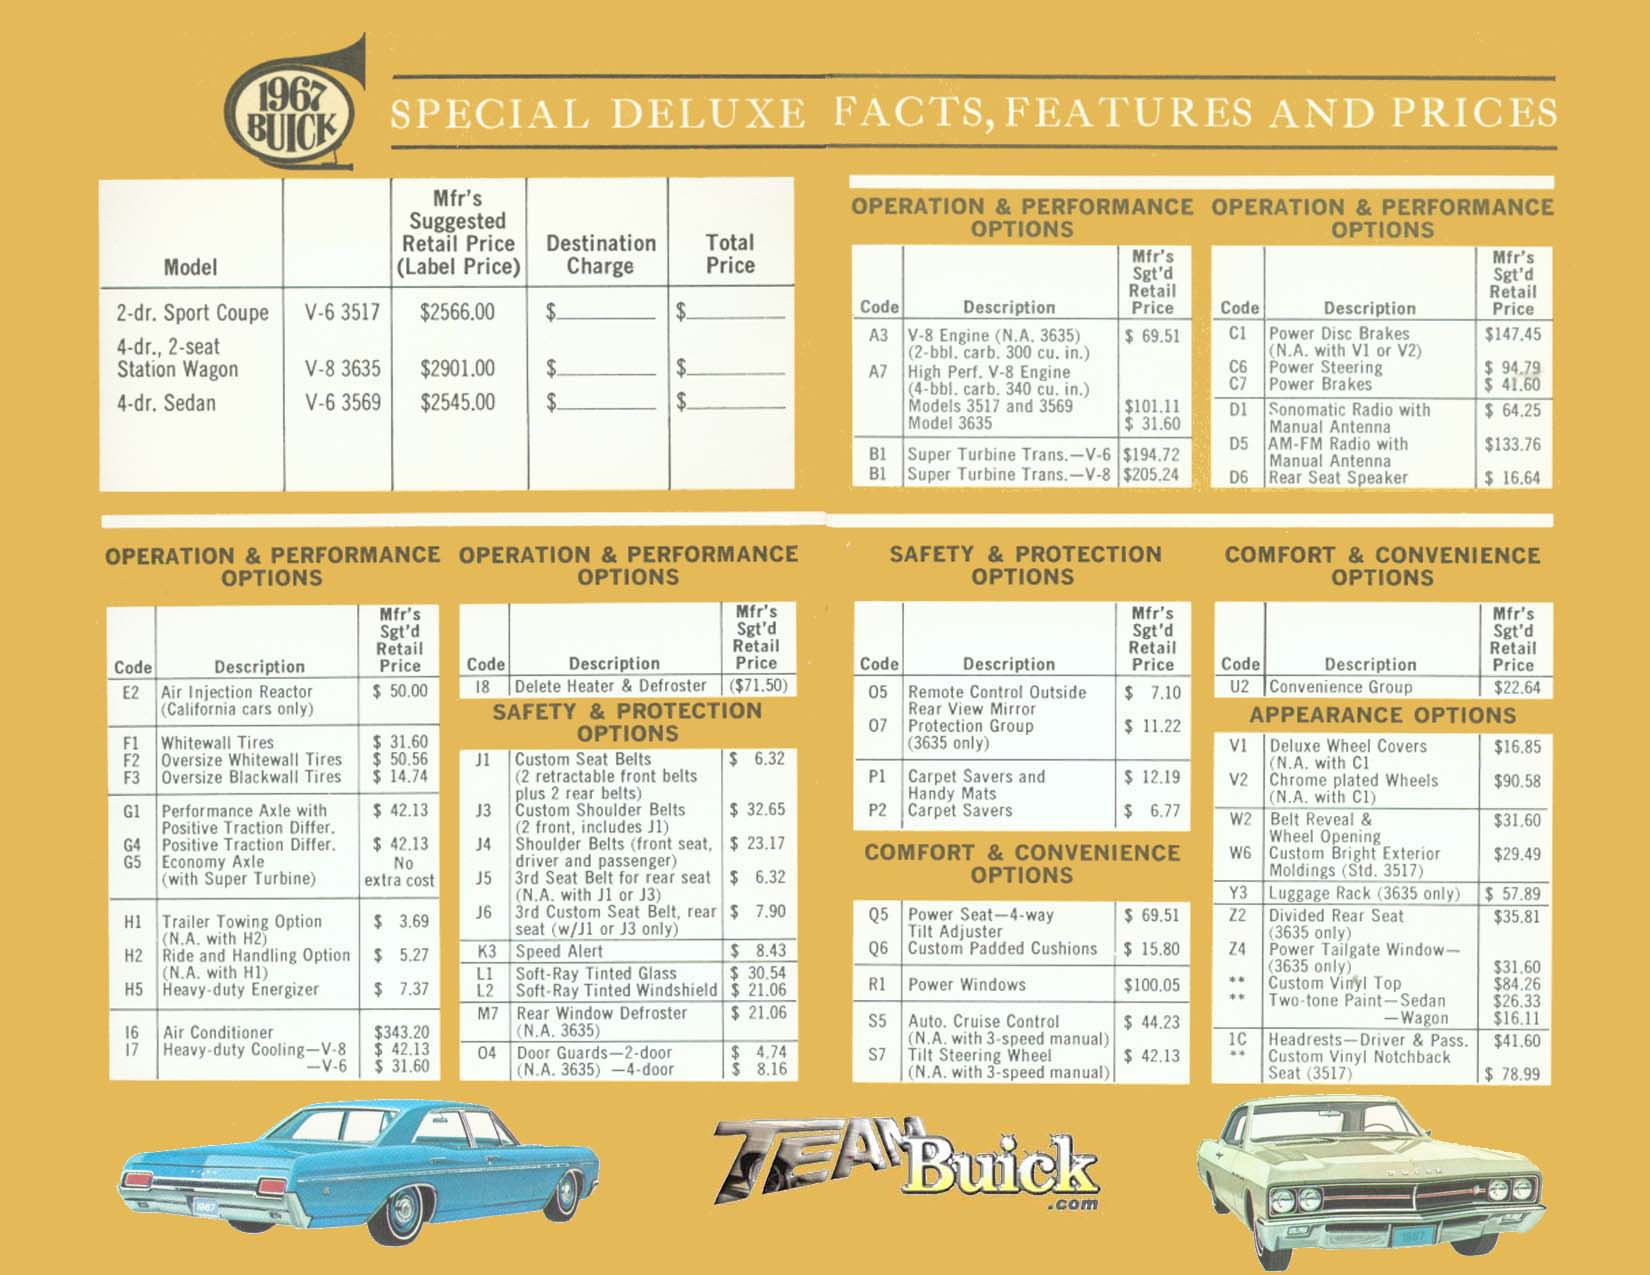 1967 Buick Special Deluxe Options and Codes